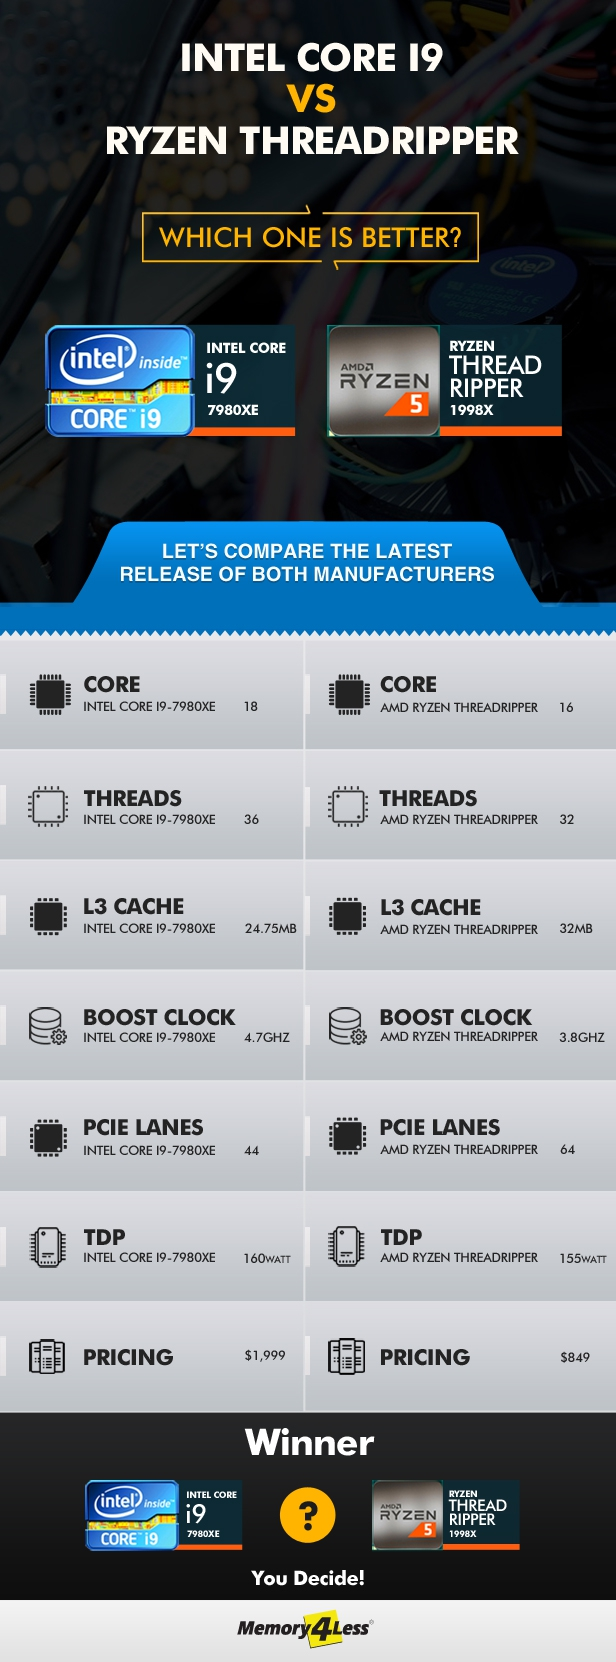 Intel-Core-i9-vs-Thread-Ripper-changes-size-2